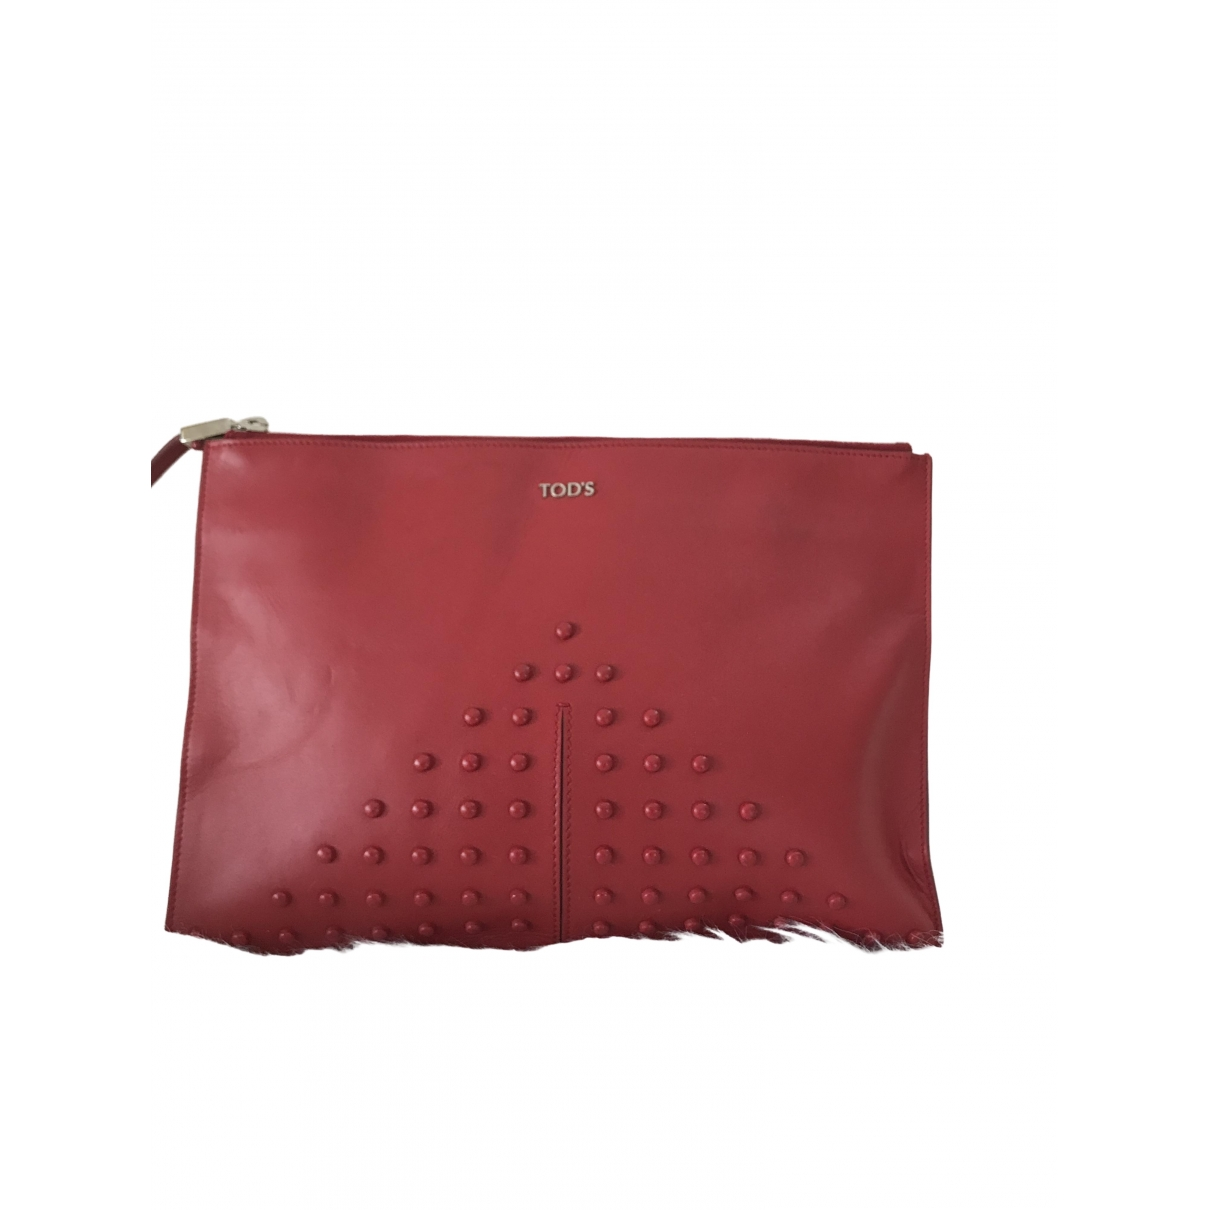 Tod's \N Red Leather Clutch bag for Women \N